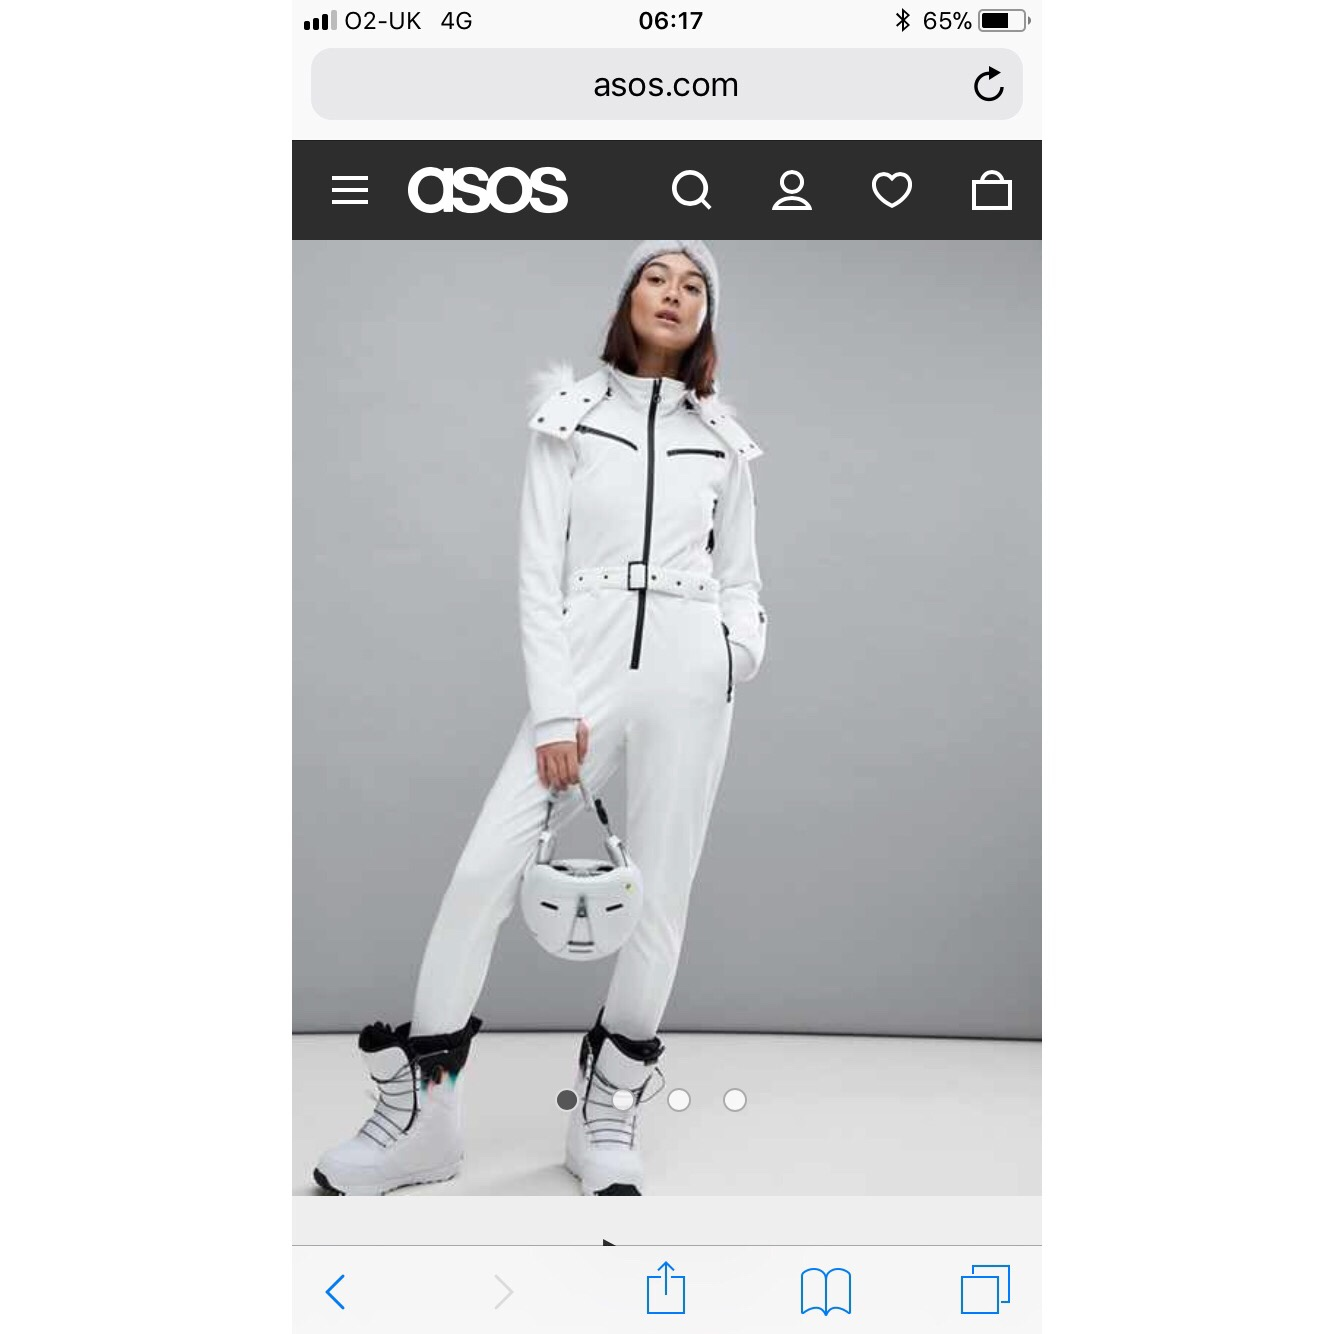 2b071985c13 Selling sold out ASOS ski suit size 12. Ignore... - Depop